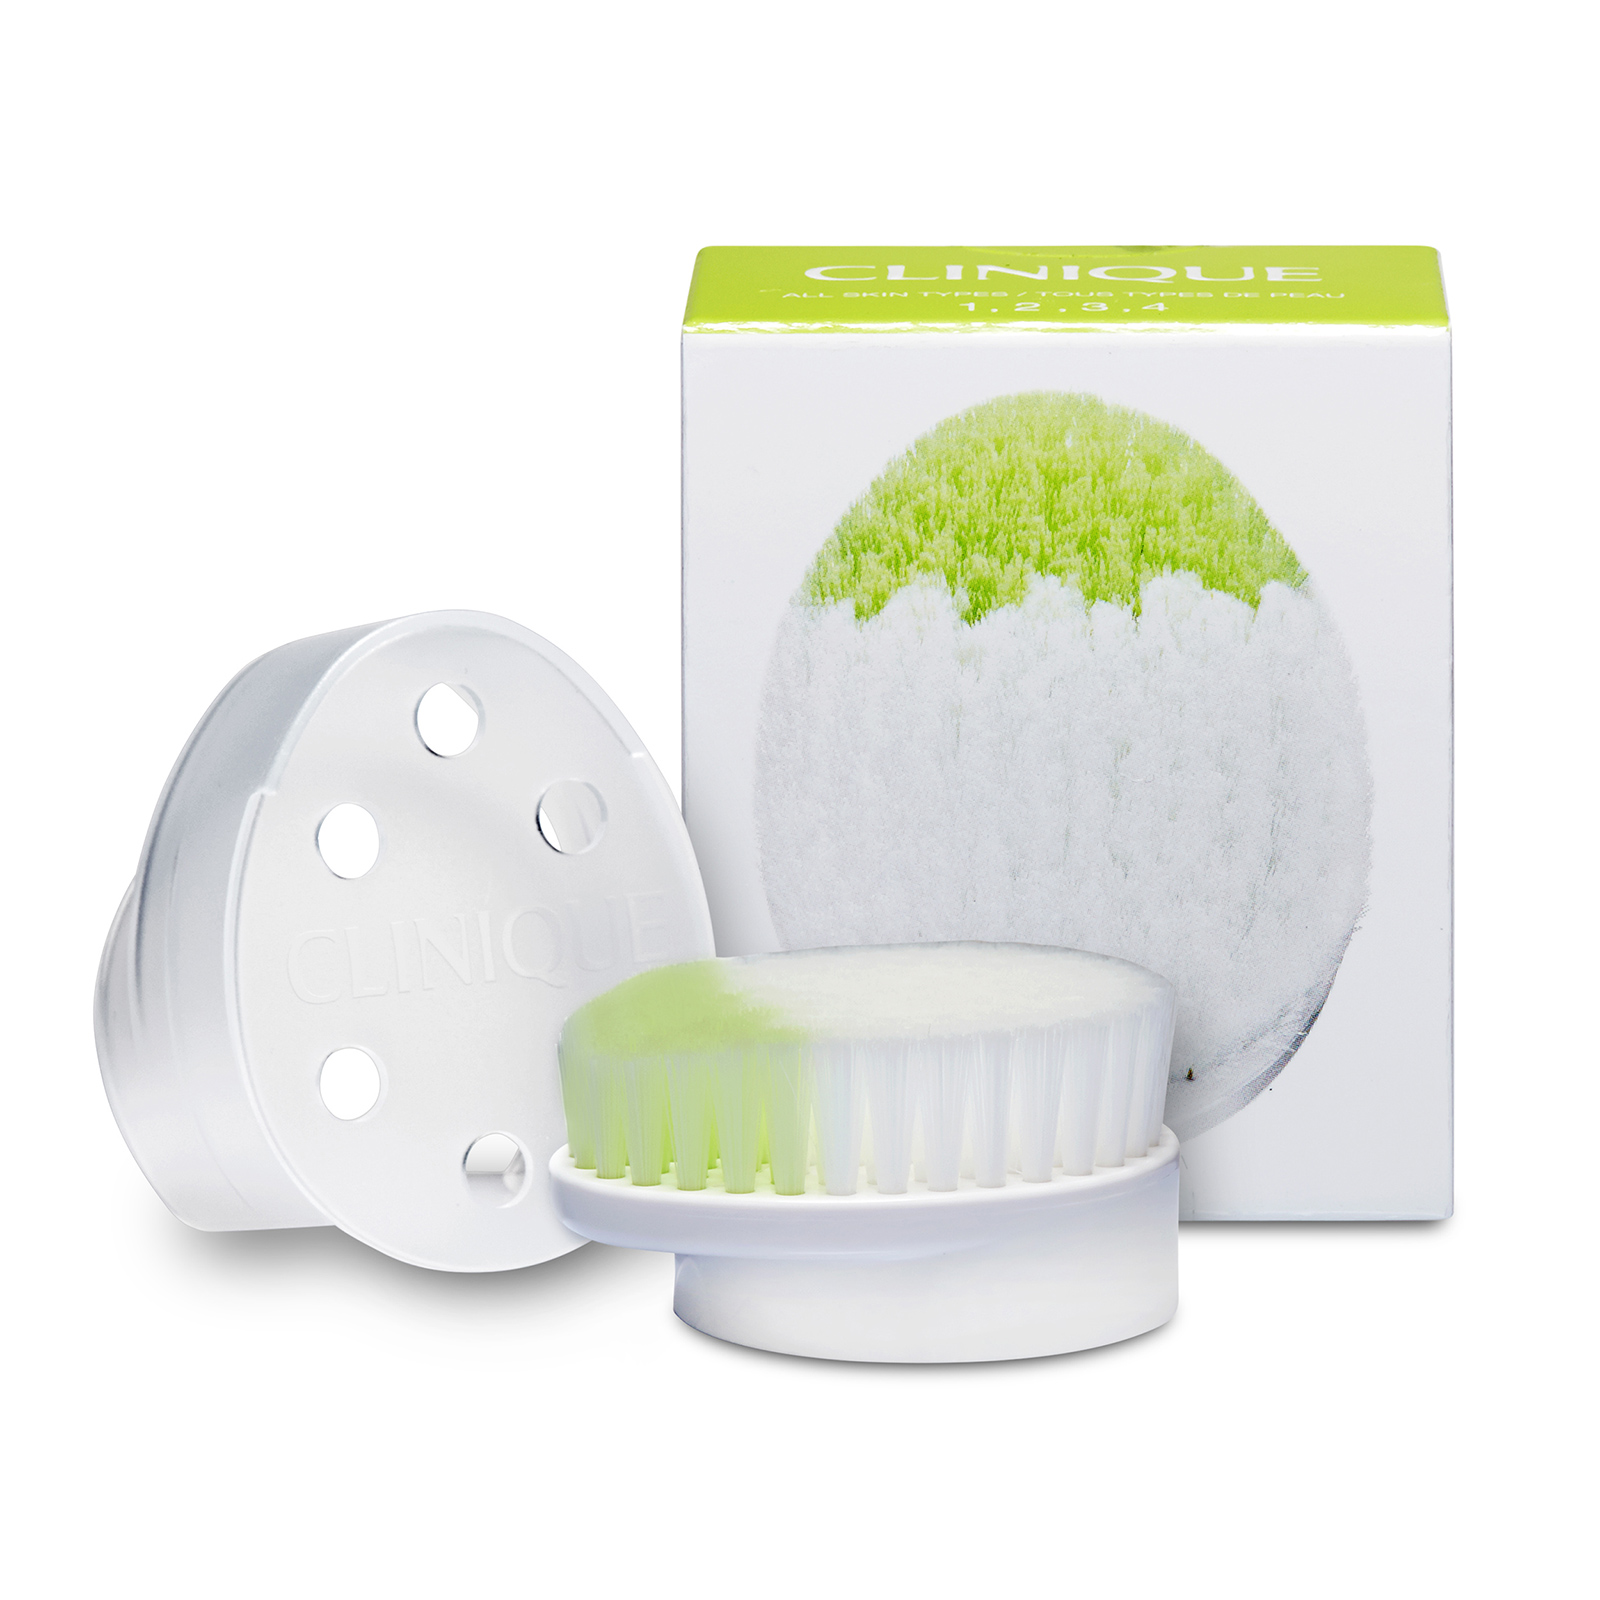 Clinique  Purifying Cleansing Brush Head 1pcs, from Cosme-De.com